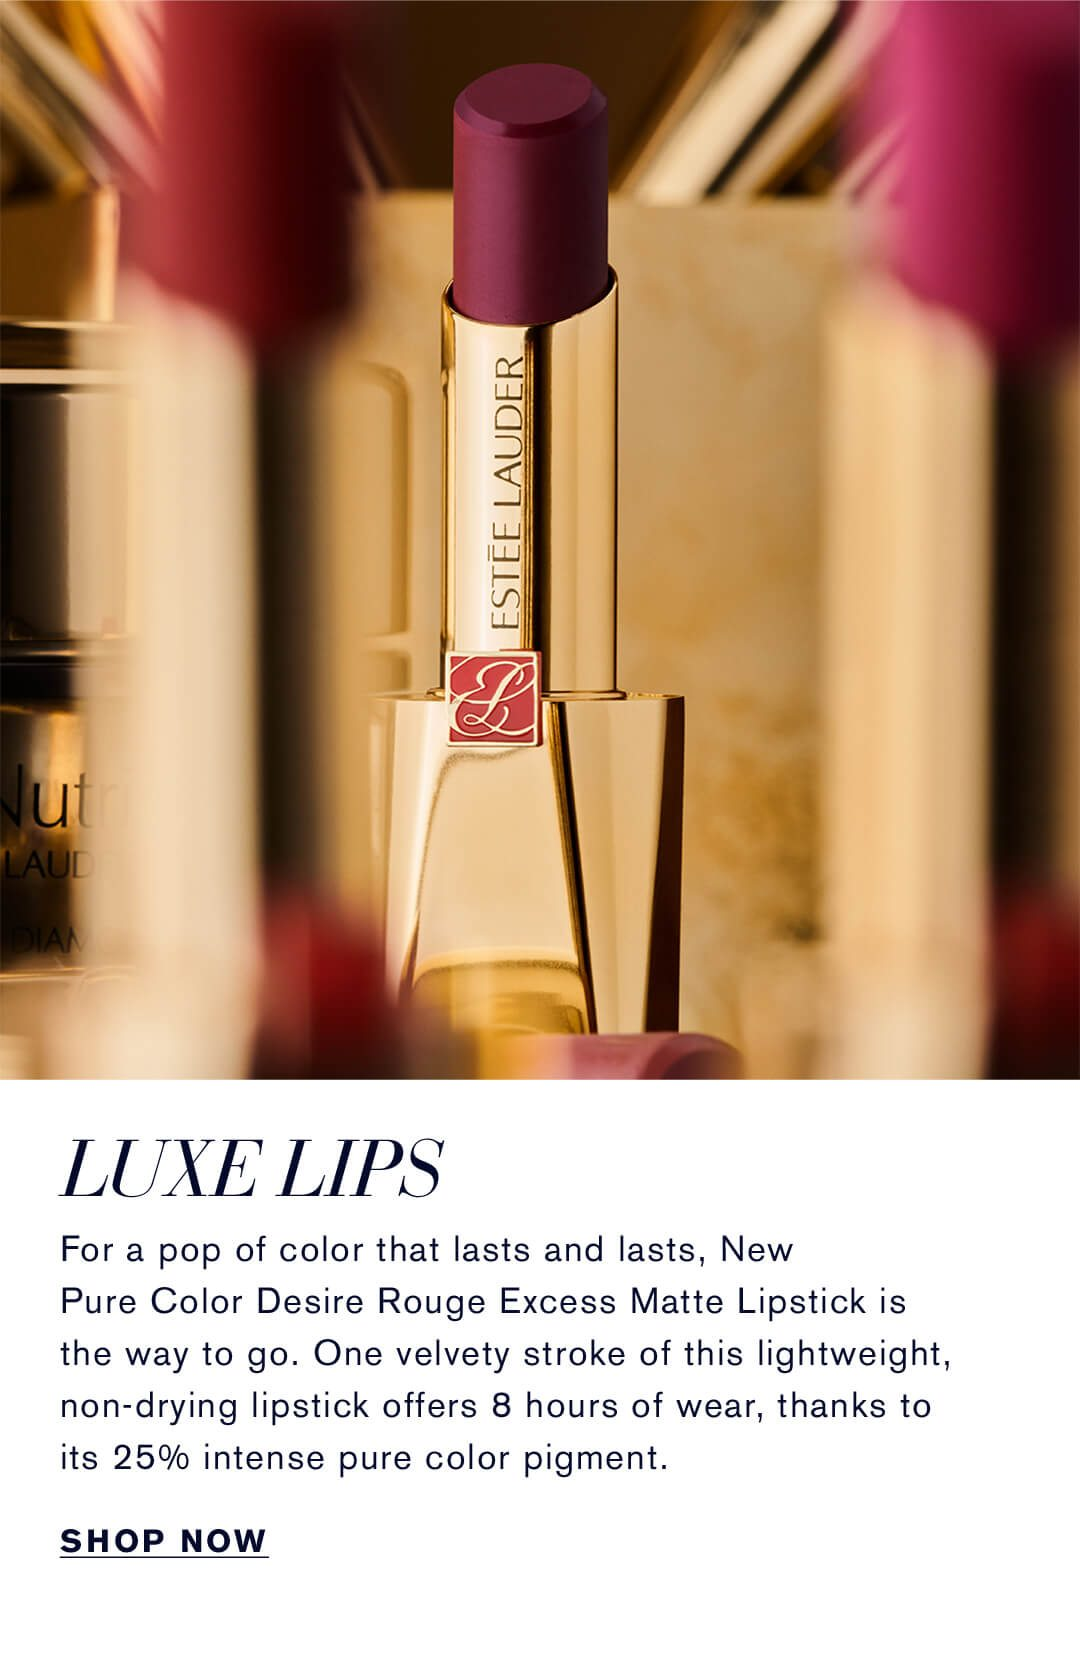 Luxe Lips | Pure Color Desire Rouge Excess Matte Lipstick